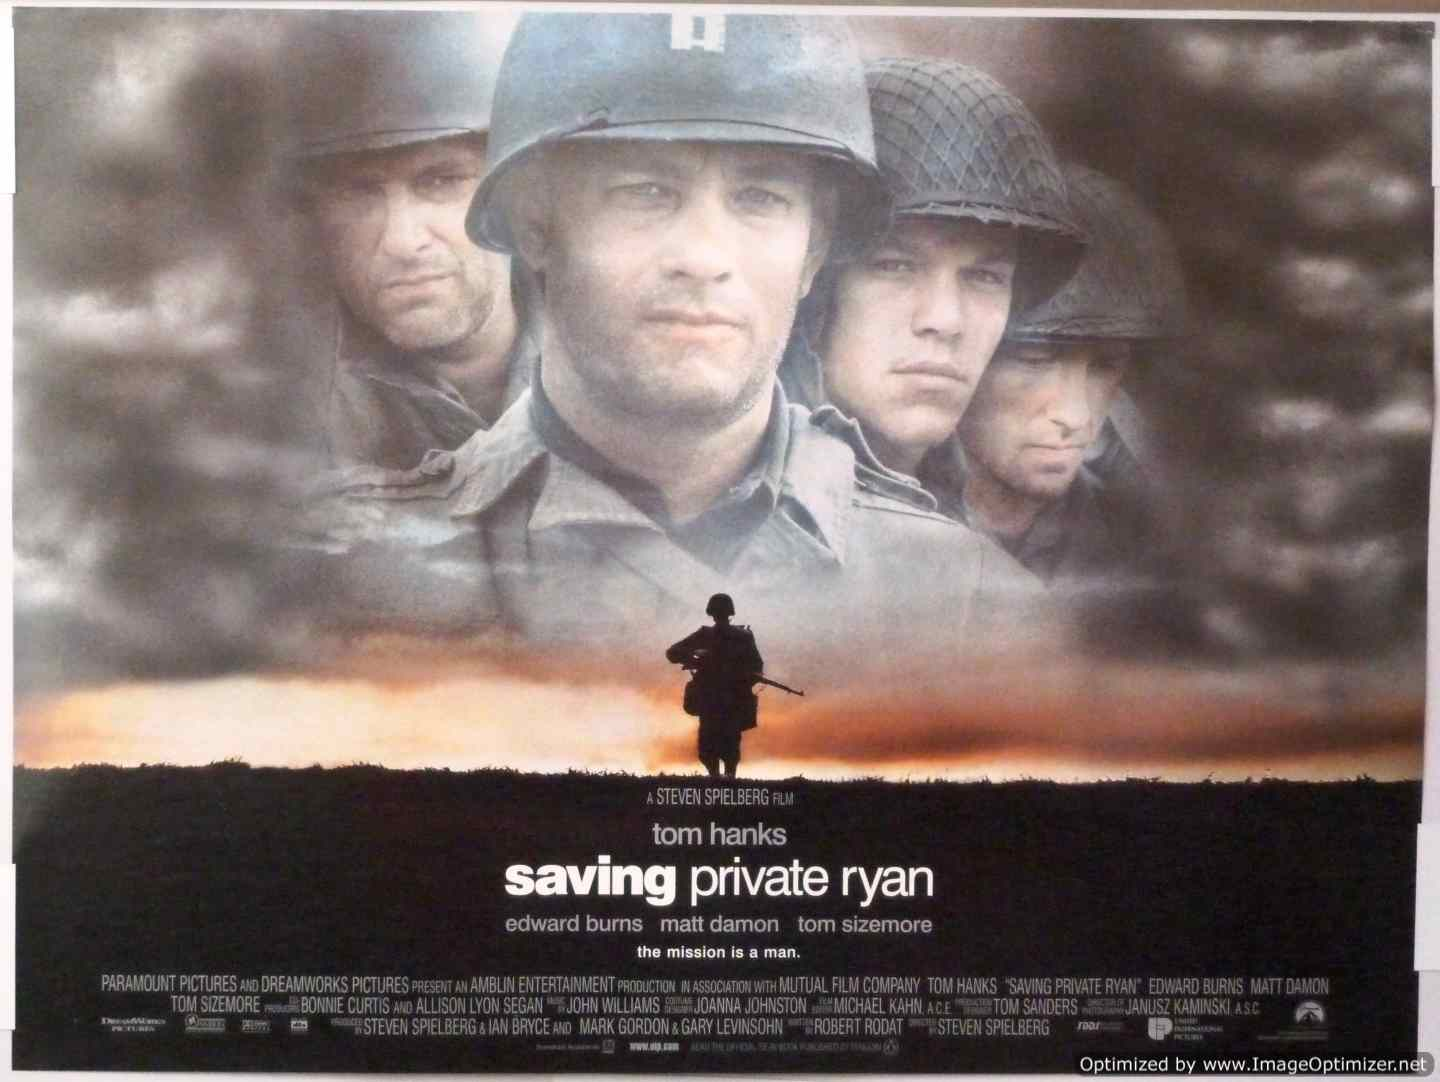 saving private ryan movie review movie reviews trailer saving private ryan movie review movie reviews trailer albums ratings com